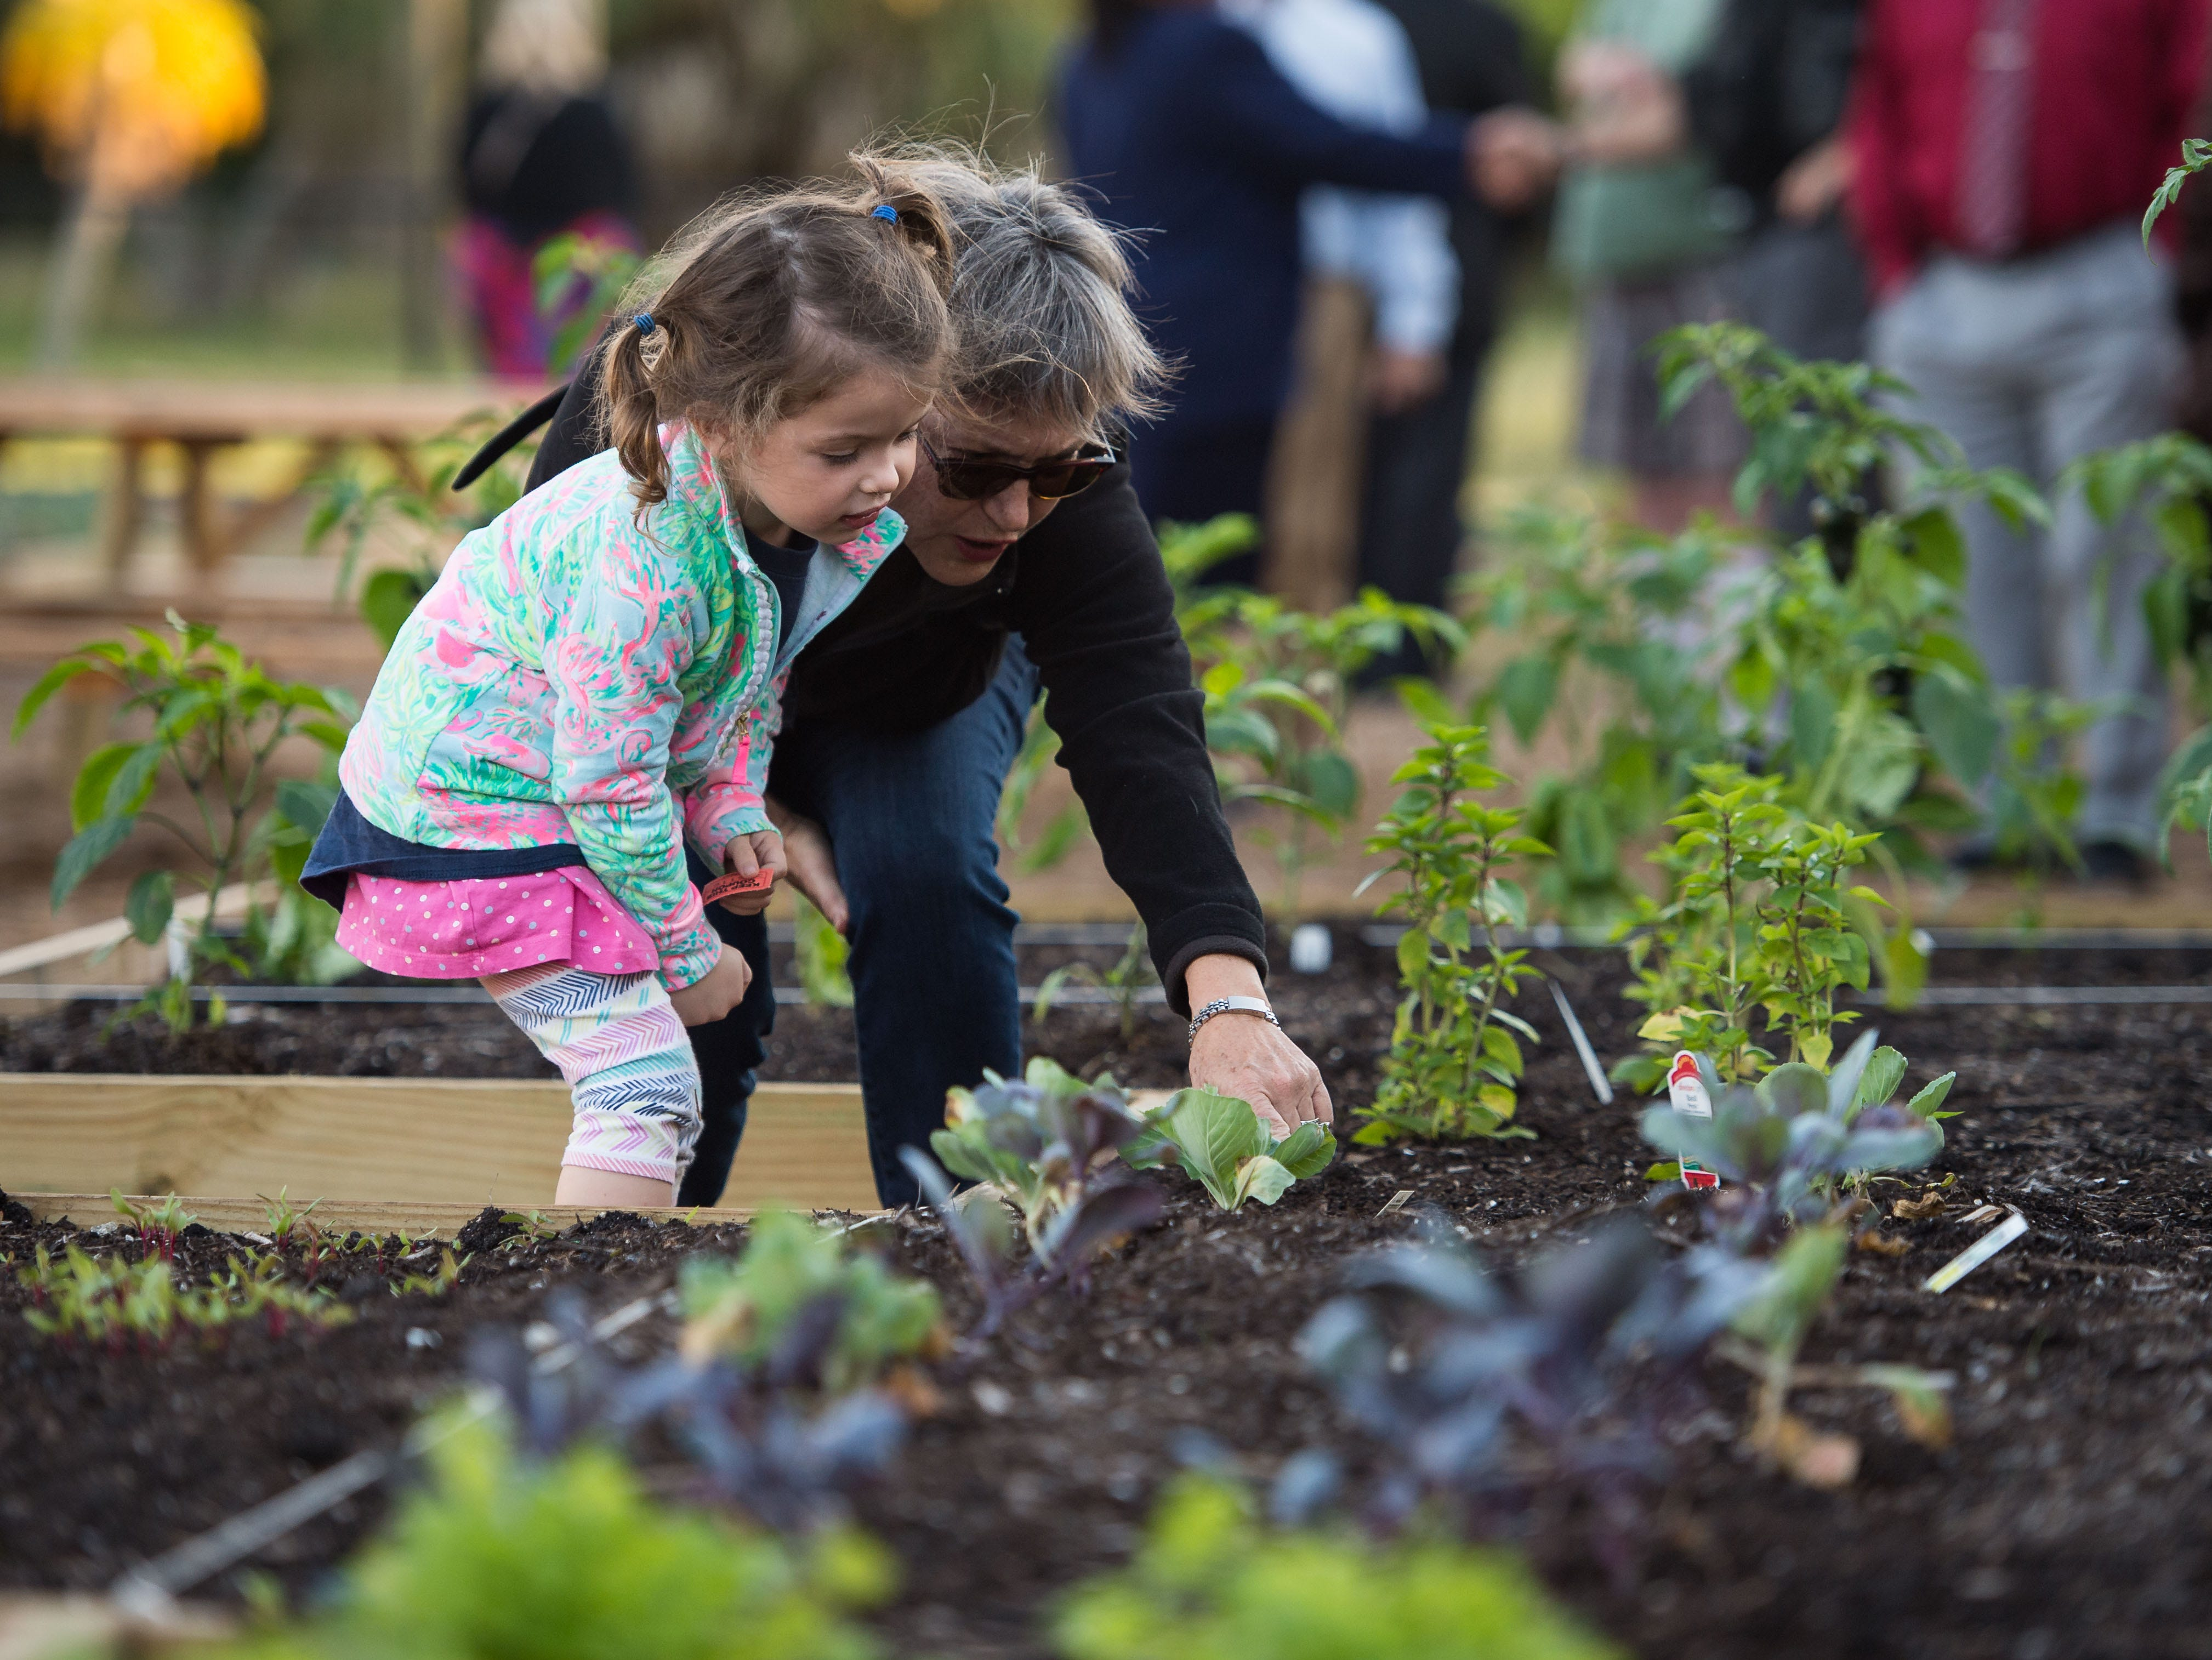 "Pat Bartlett, of Stuart, shows her granddaughter, Caroline Cross, 4, the vegetables growing at the new East Stuart Community Garden on Tuesday, Nov. 27, 2018, at the official ribbon cutting ceremony held by House of Hope and City of Stuart Commissioners. ""I brought her today too see what a community garden is all about,"" Bartlett said, ""it brings the community closer...to get to know your neighbors."" The collaborative garden, located at 520 SE Florida St. in East Stuart, will offer educational opportunities for gardening and better nutrition, as well as help supply local pantries and soup kitchens with fresh produce. Go to www.hohmartin.org for more information, or contact House of Hope at (772) 286-4673."